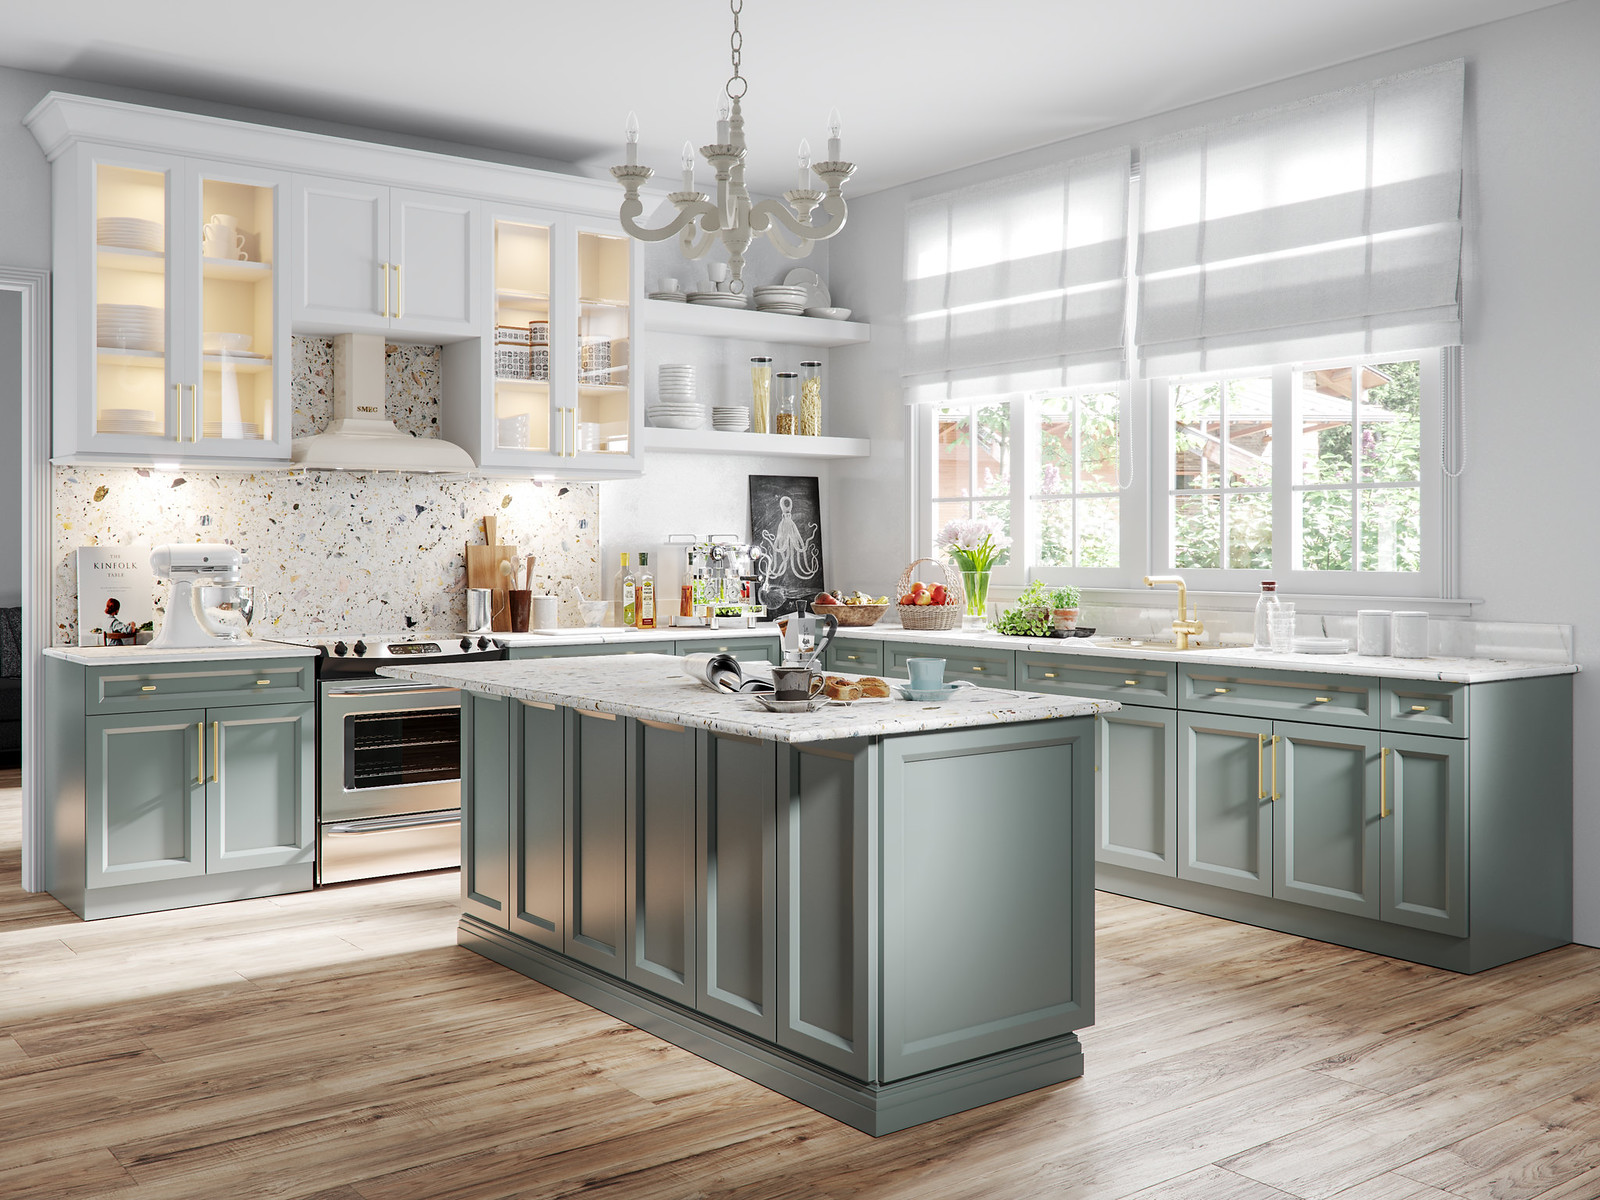 Trinity Kitchen CGI Render